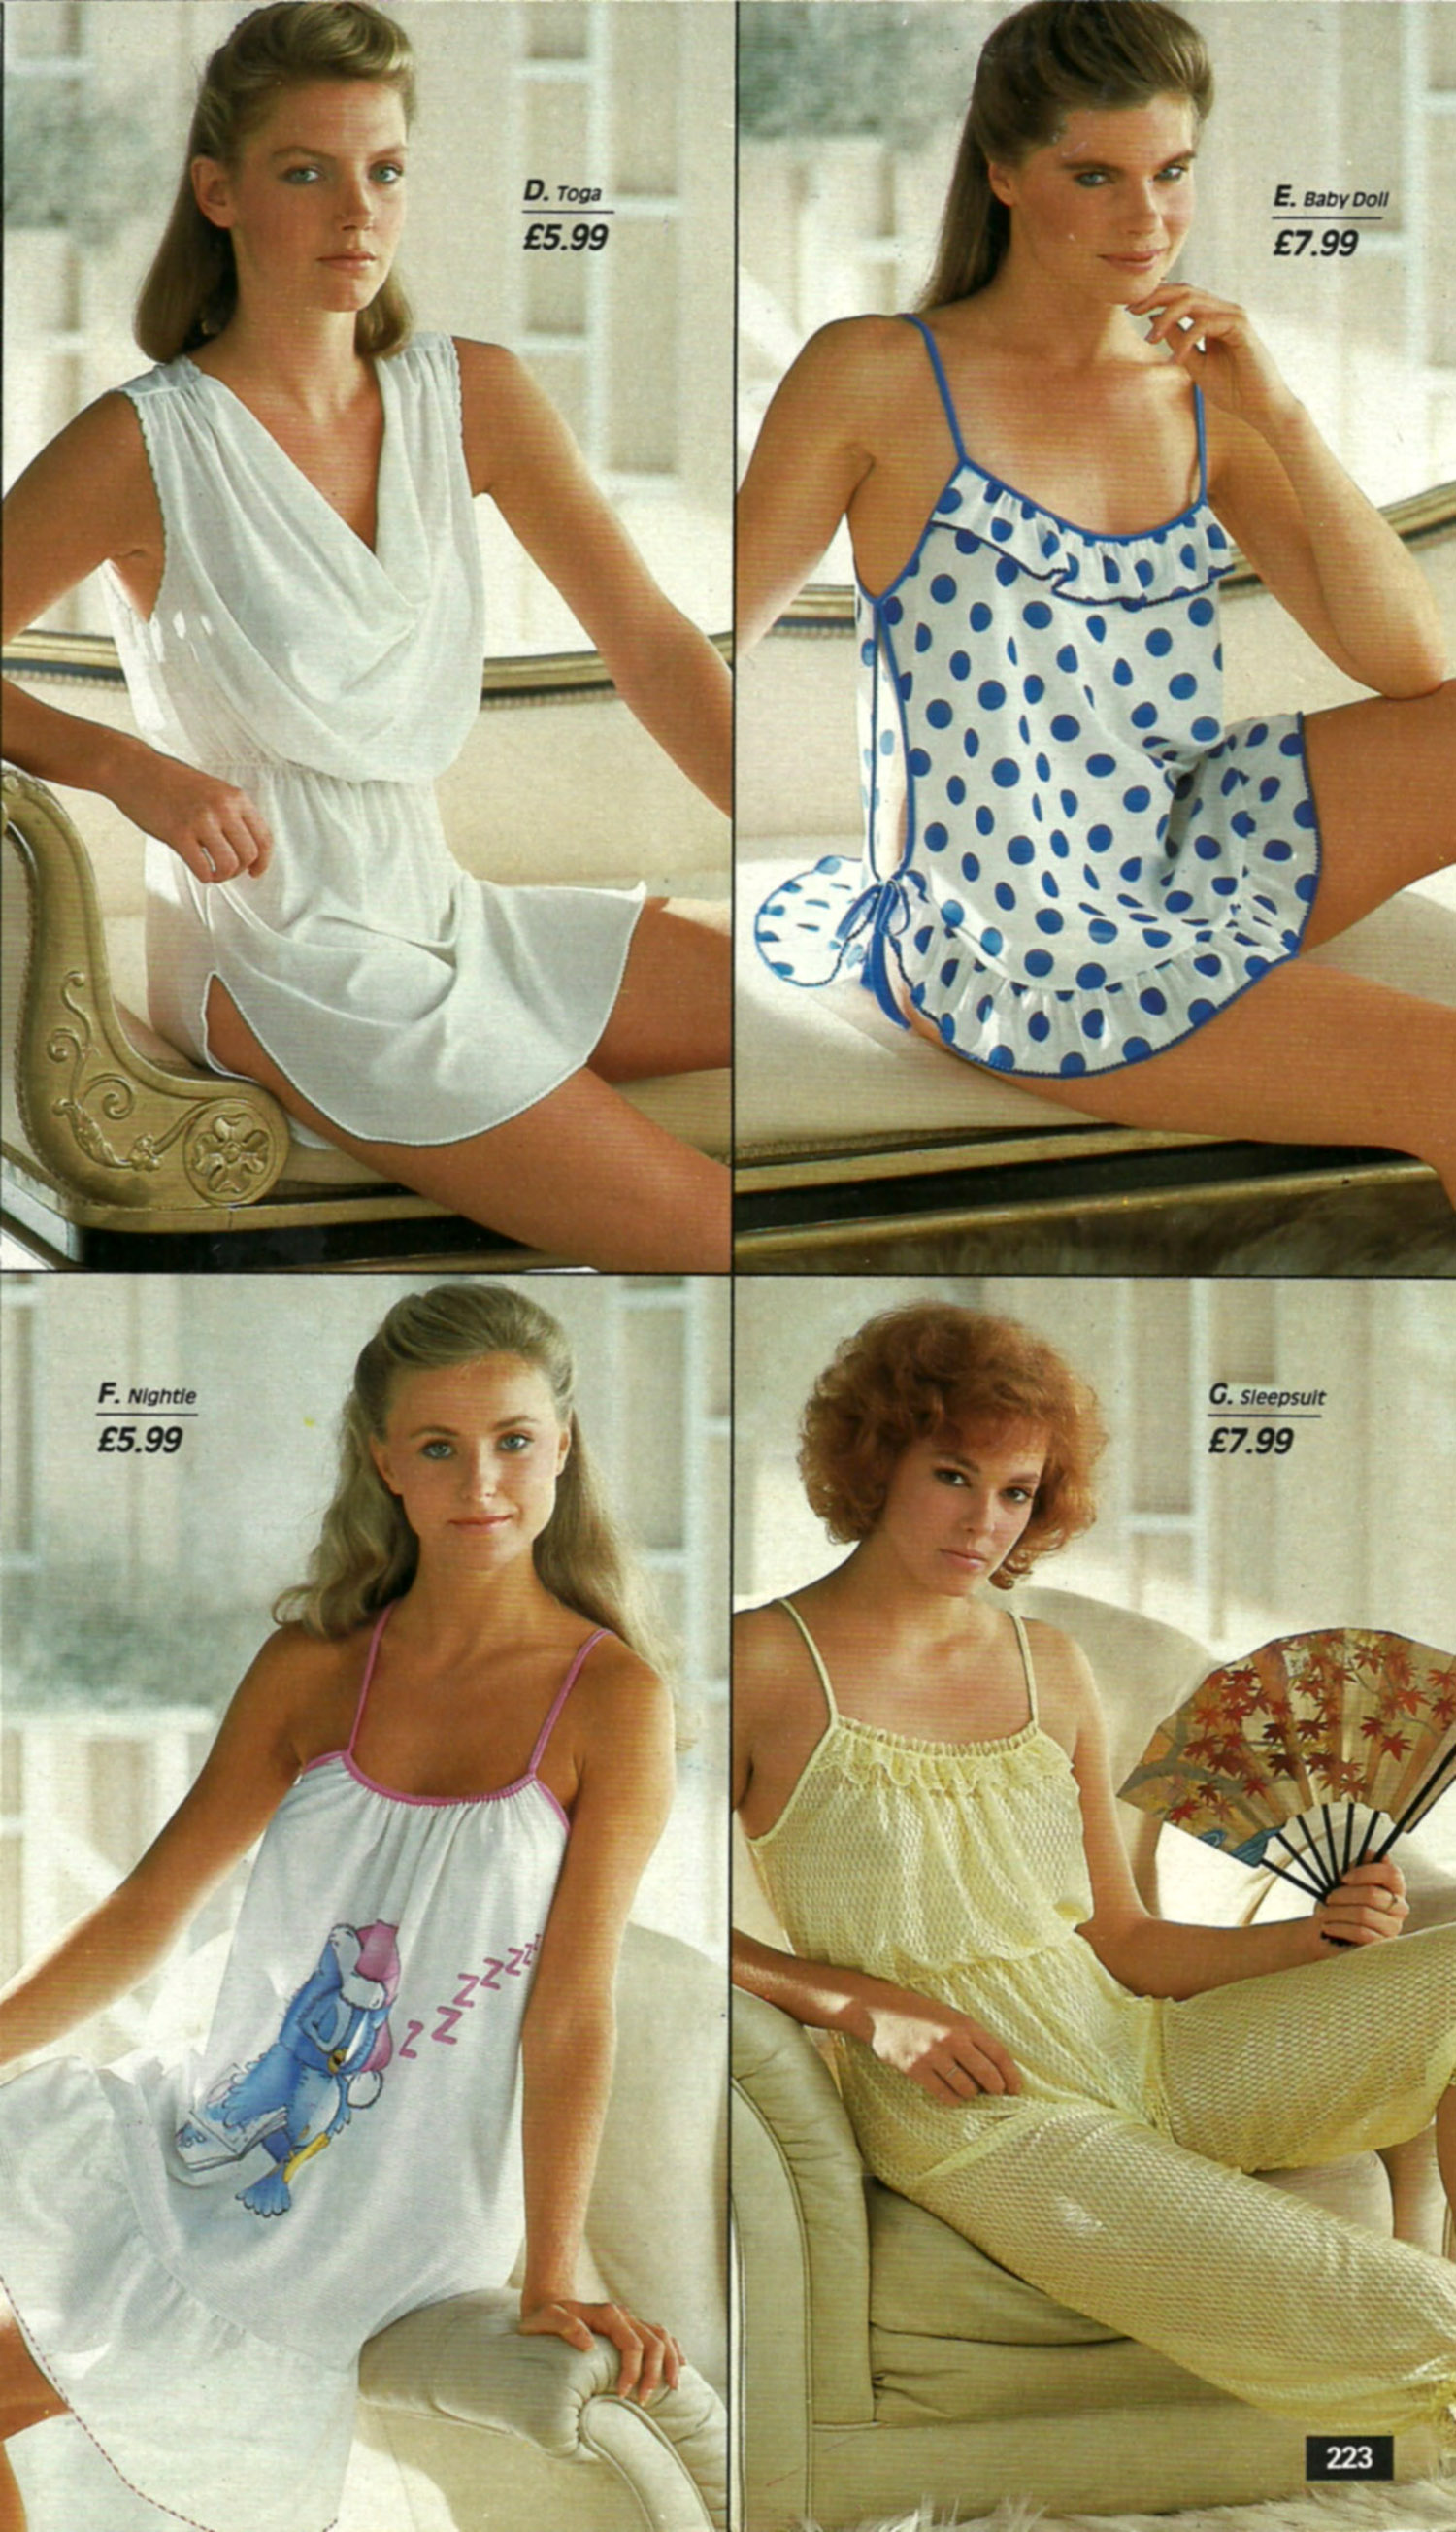 Kays Littlewoods catalog